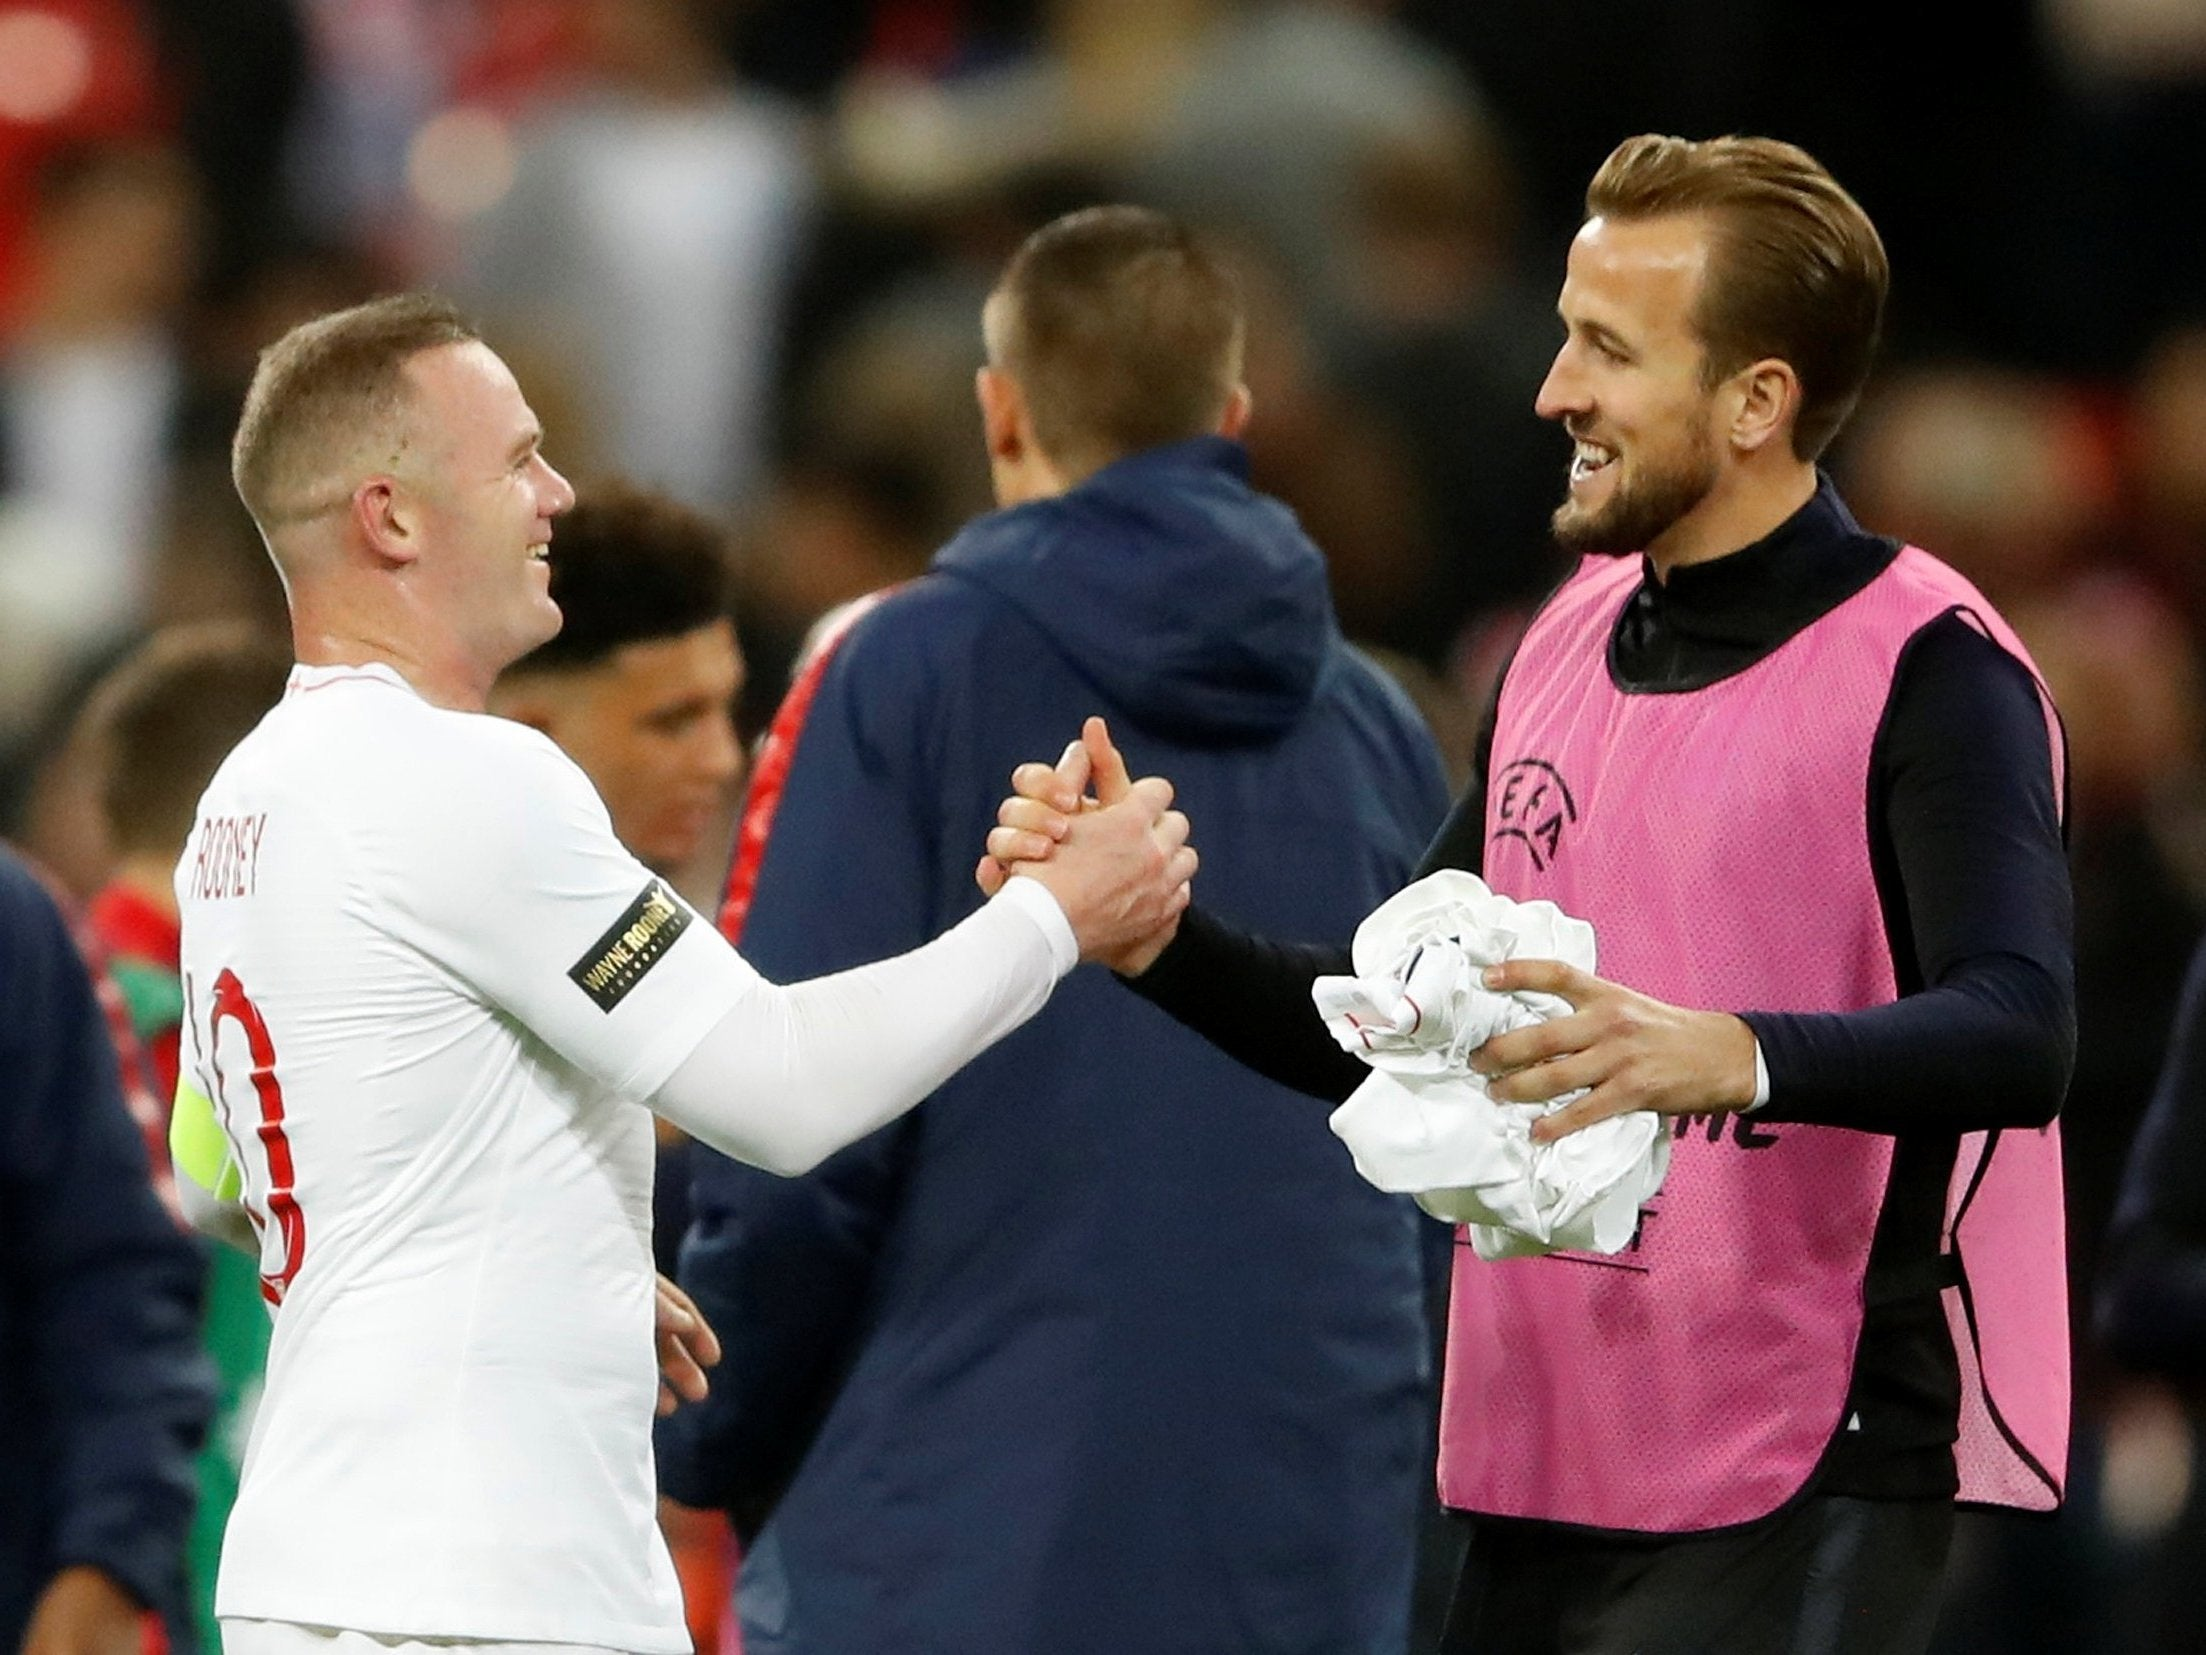 Wayne Rooney Latest News Breaking Stories And Comment The Flexus Gesture Control Sleeve International